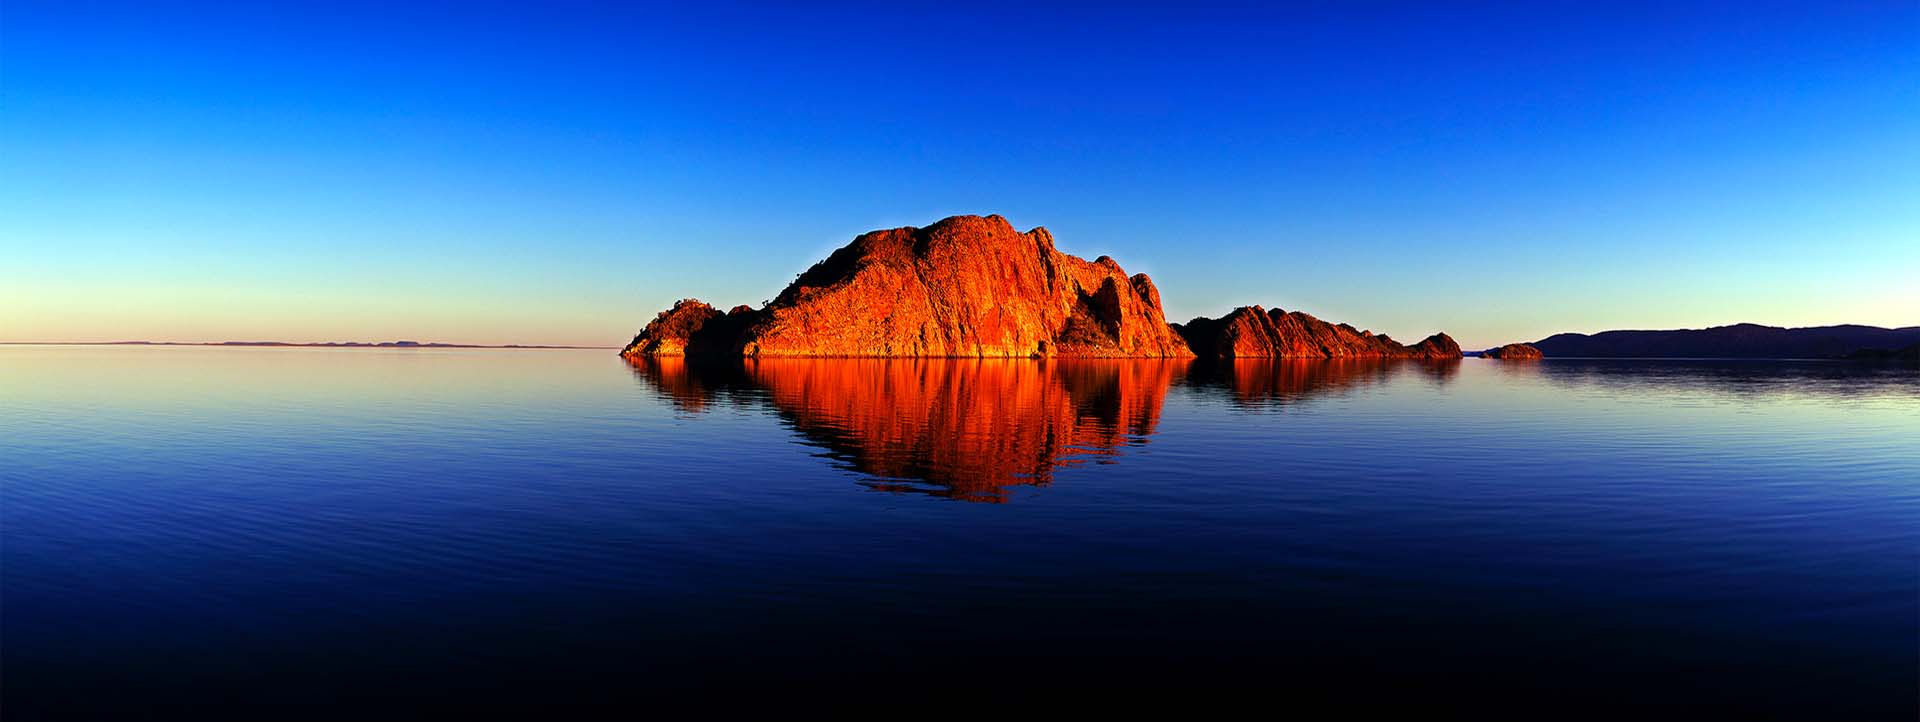 LAKE ARGYLE Berenice Carter photo